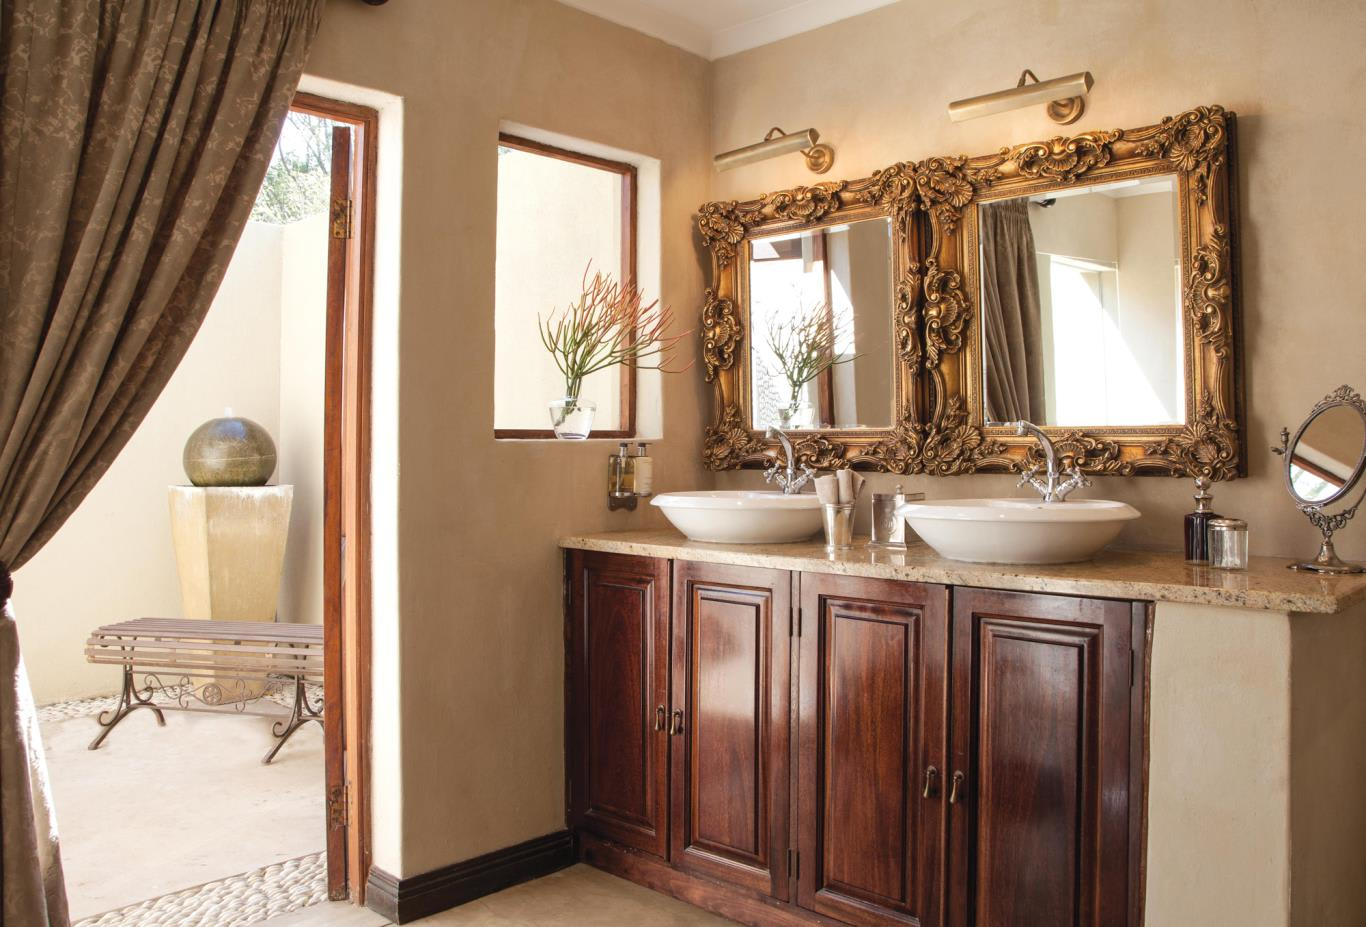 Suite-Bathroom-vanity